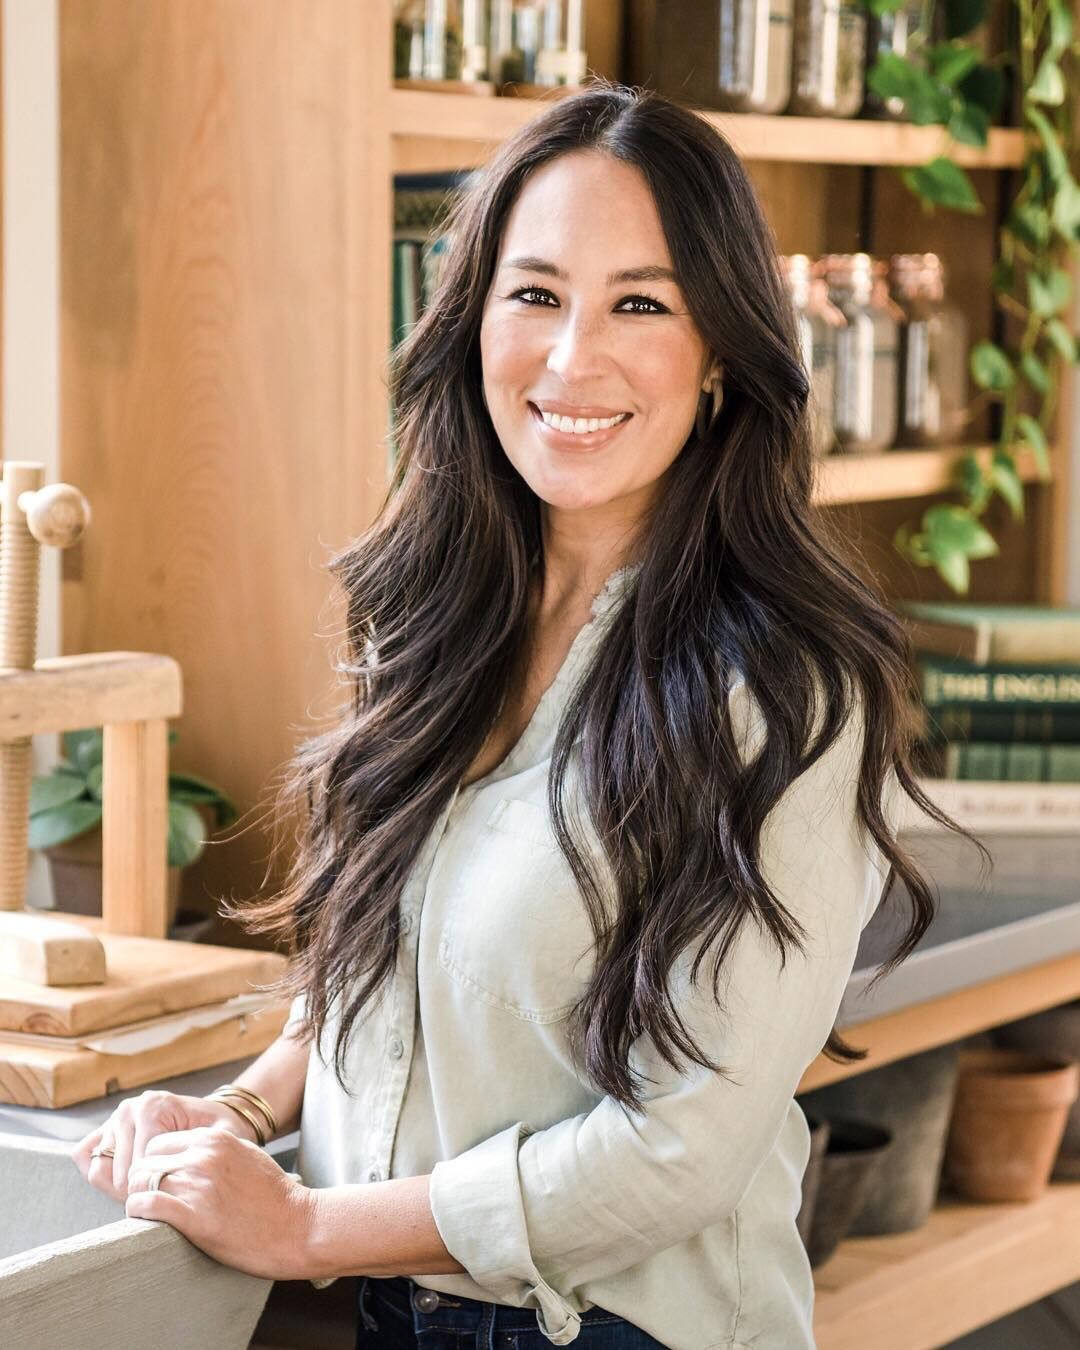 Joanna Gaines Just Released Magnolia Market's Fall Collection and We Want Everything